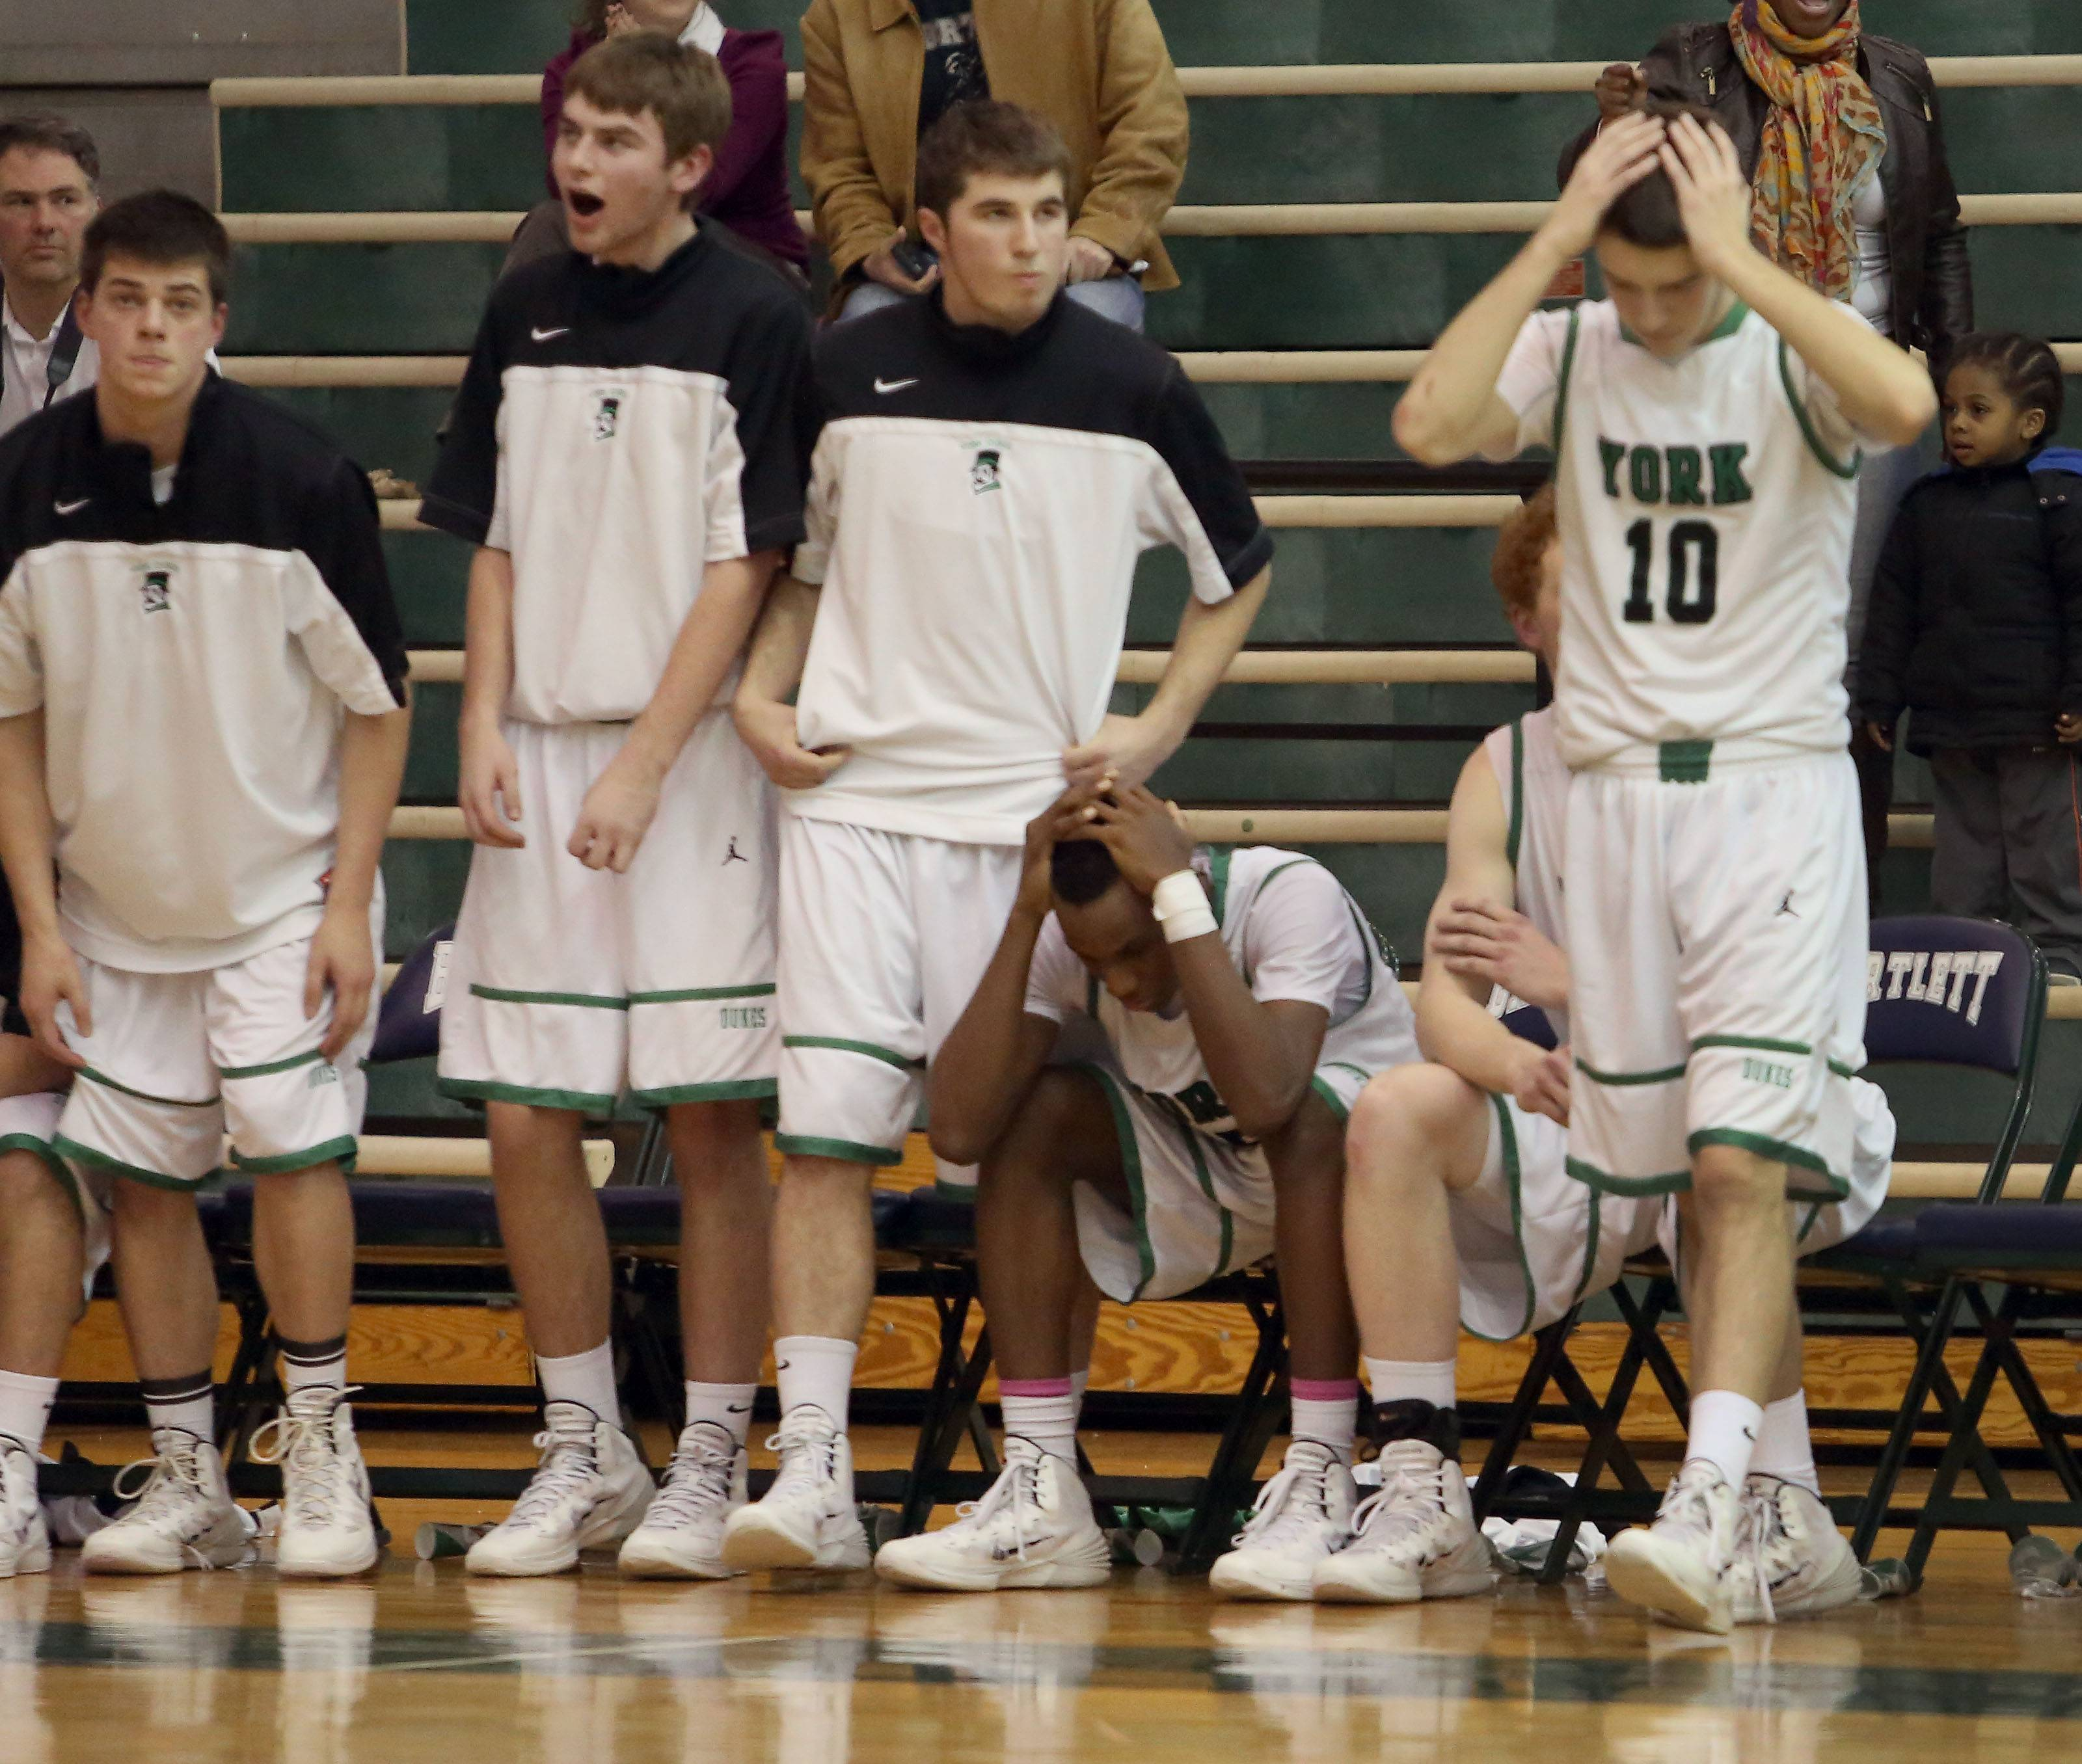 York players react as they lose to Morton in triple overtime.